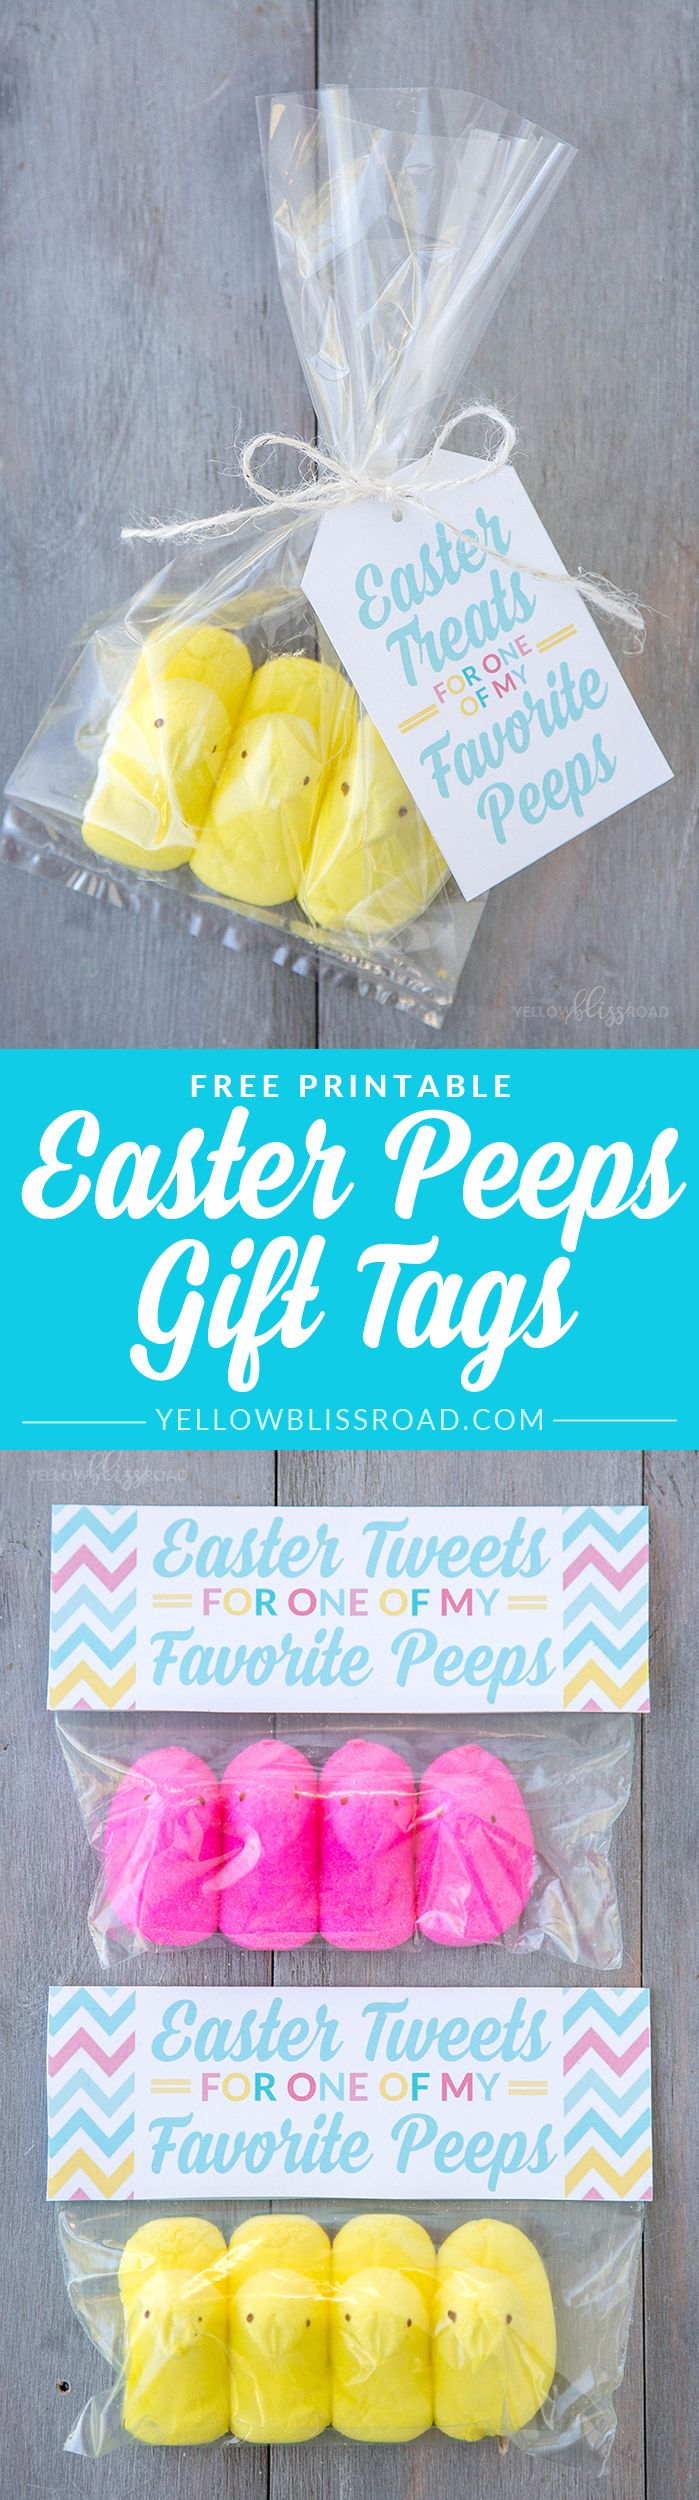 Peeps easter gift idea with free printables free printable gift peeps easter gift idea with free printables negle Image collections